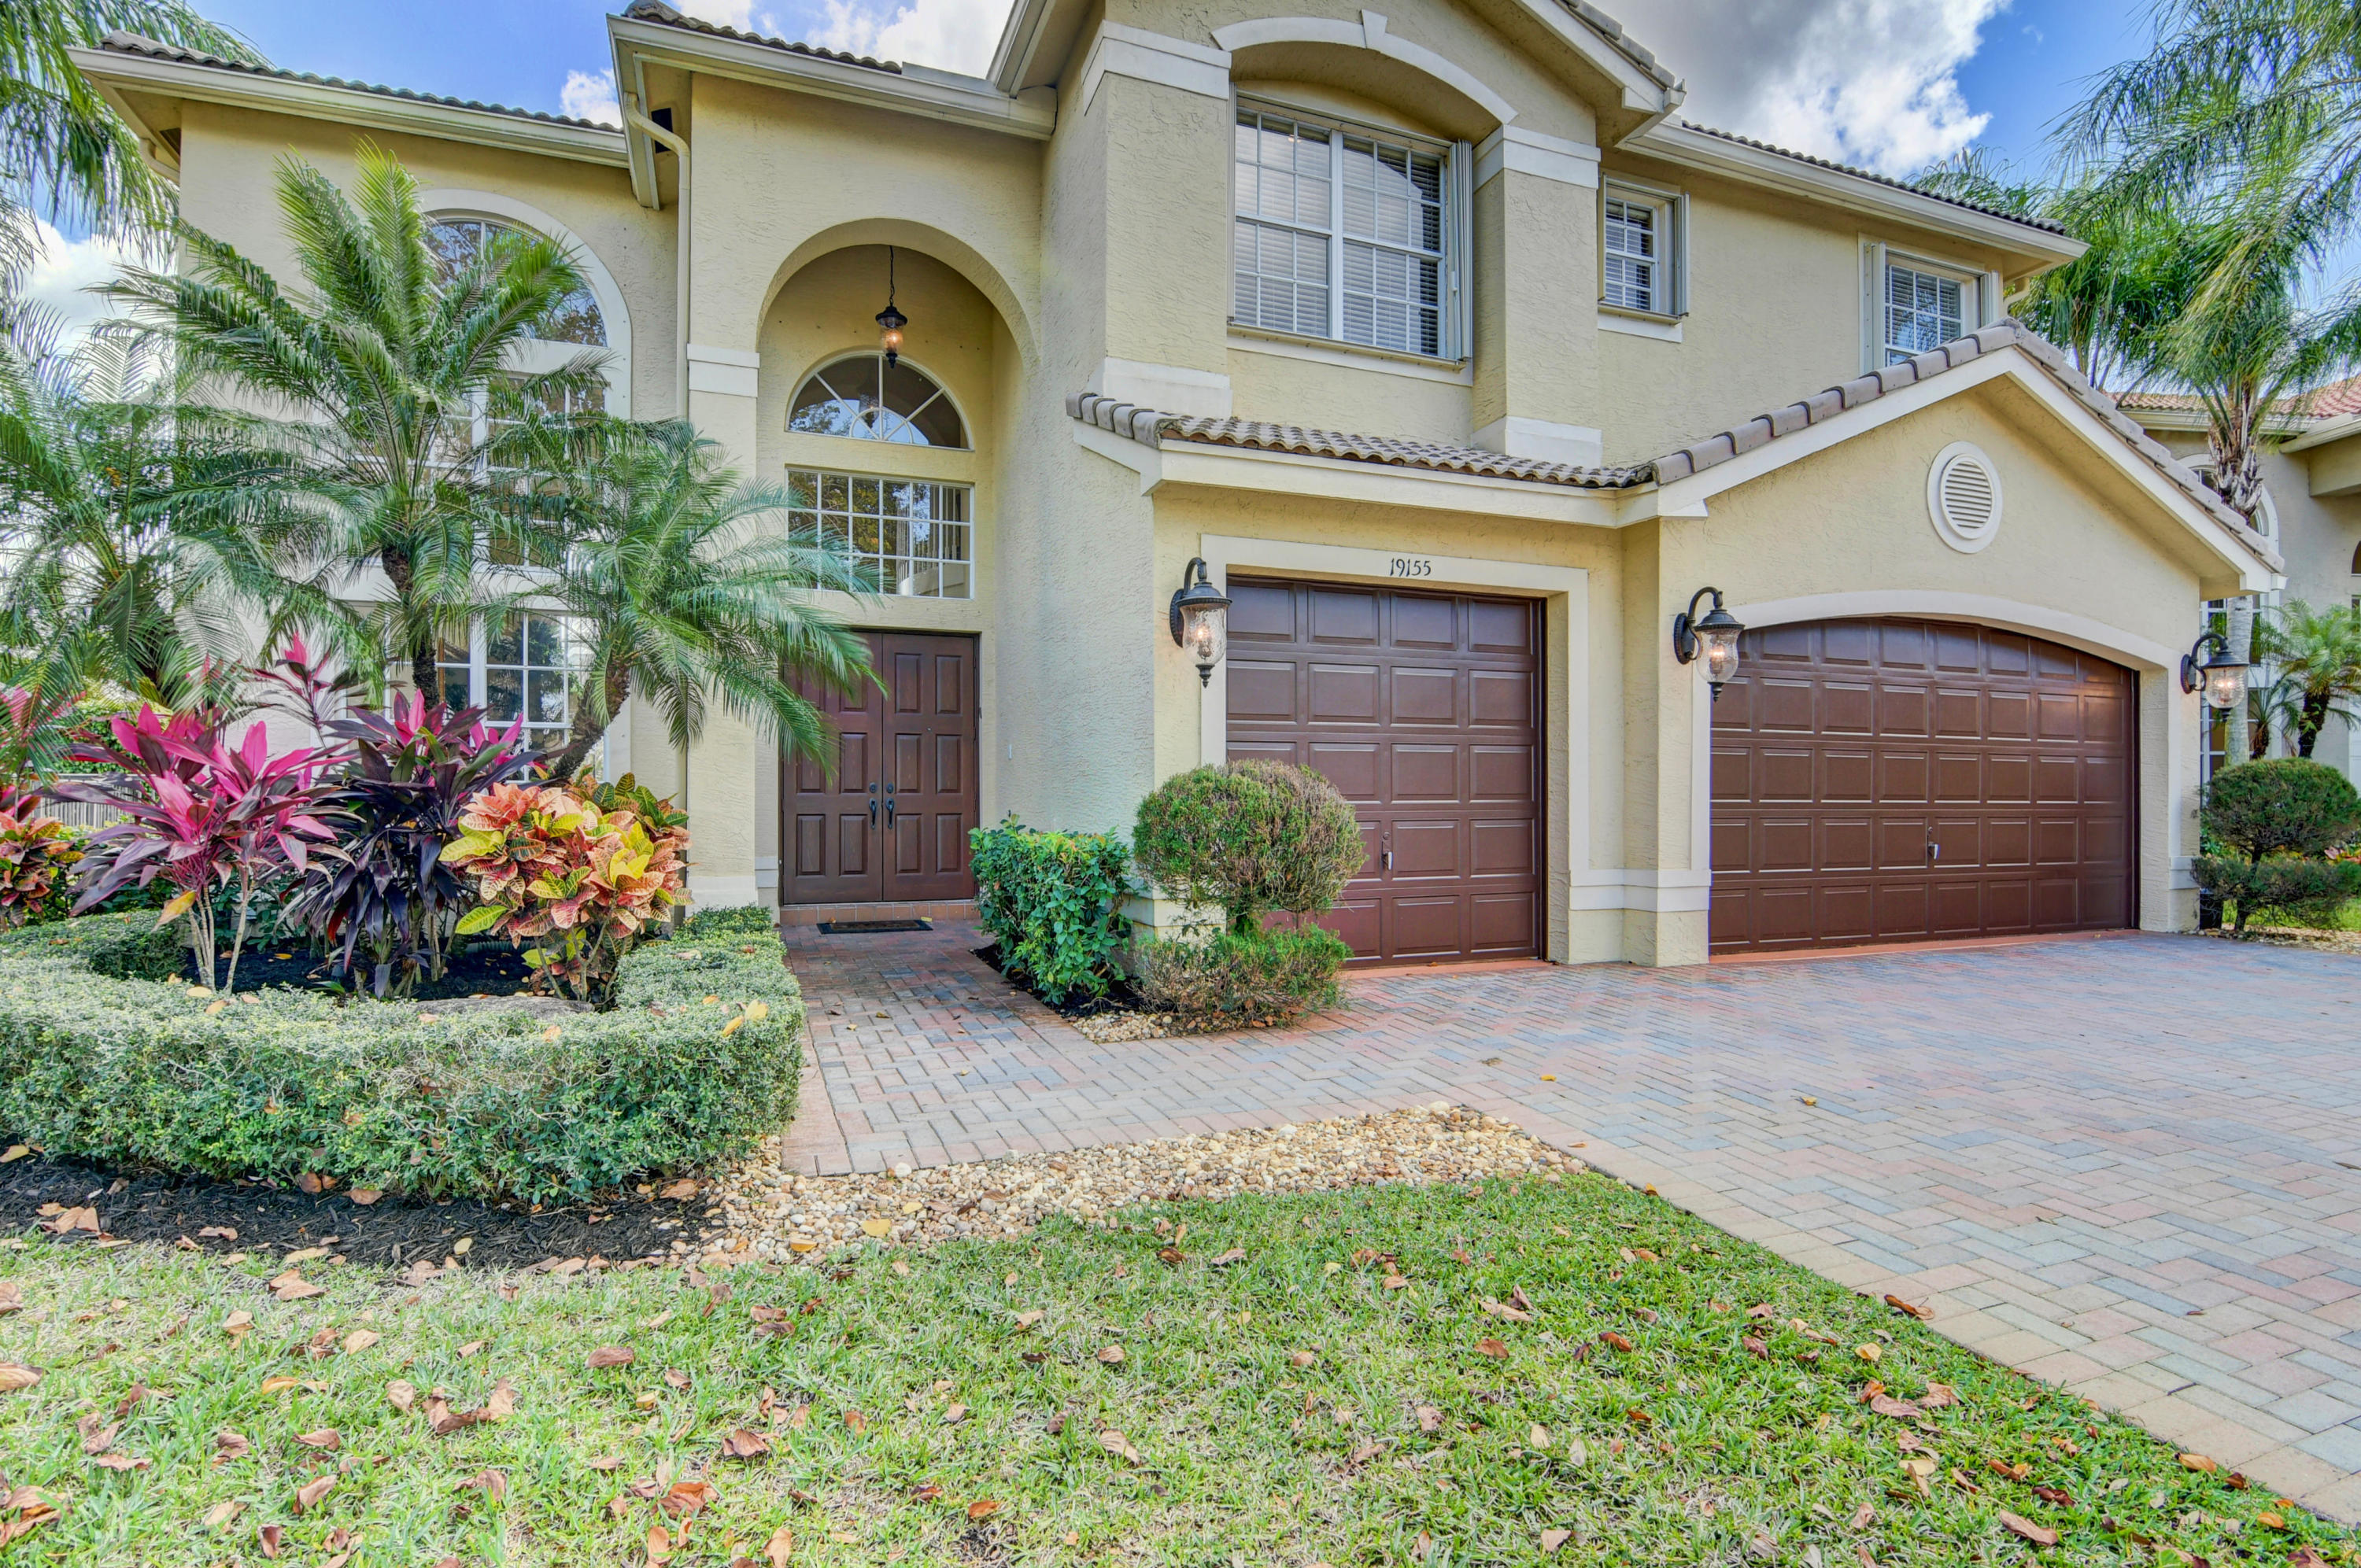 Photo of 19155 Two River Lane, Boca Raton, FL 33498